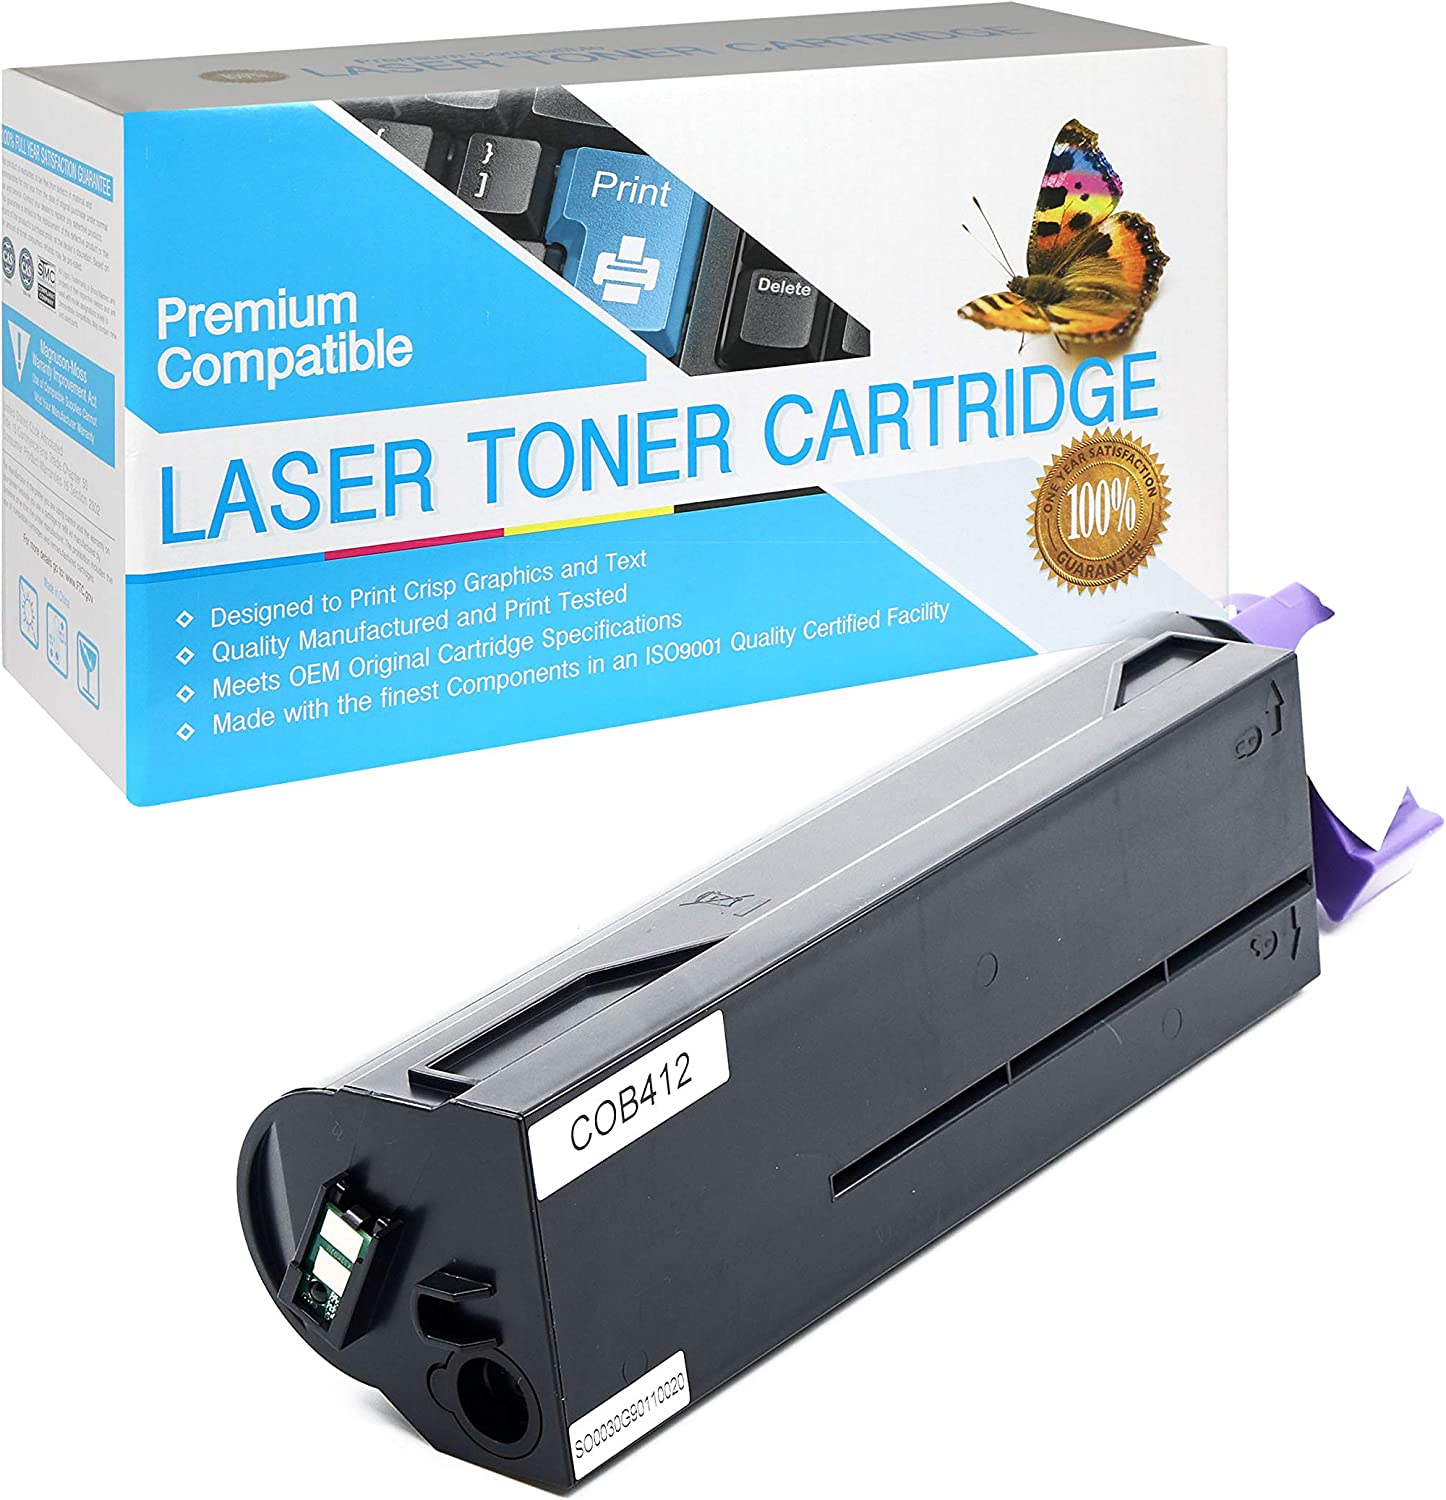 Black,1 Pack 45807105 SuppliesOutlet Compatible Toner Cartridge Replacement for Okidata B412